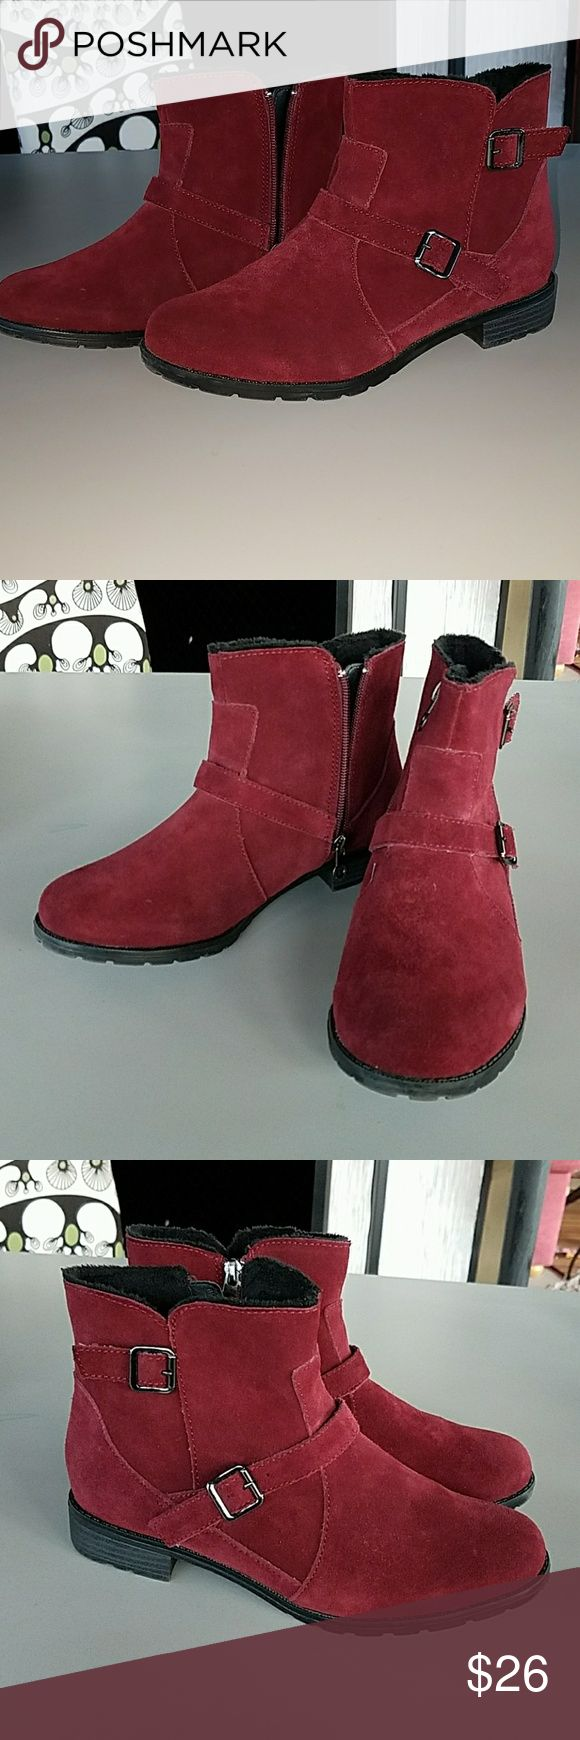 Sporto boots booties ankle, Leather sz 8 Very soft and great condition . Color is more of a raspberry red. No issues Sporto Shoes Ankle Boots & Booties